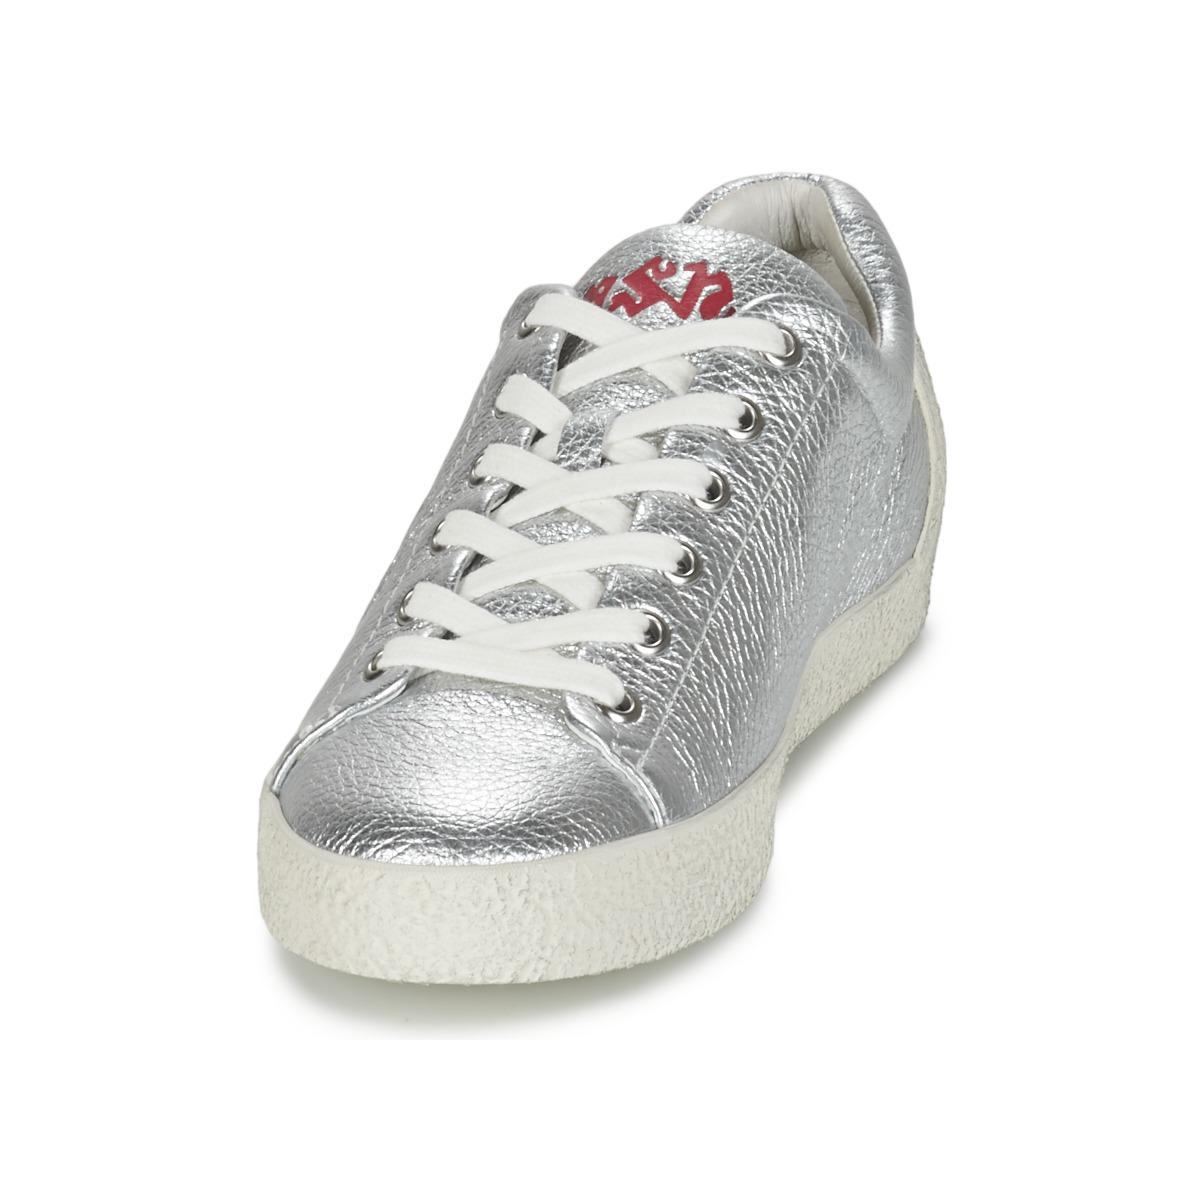 Ash Nicky Shoes (trainers) in Silver (Metallic) - Save 13%